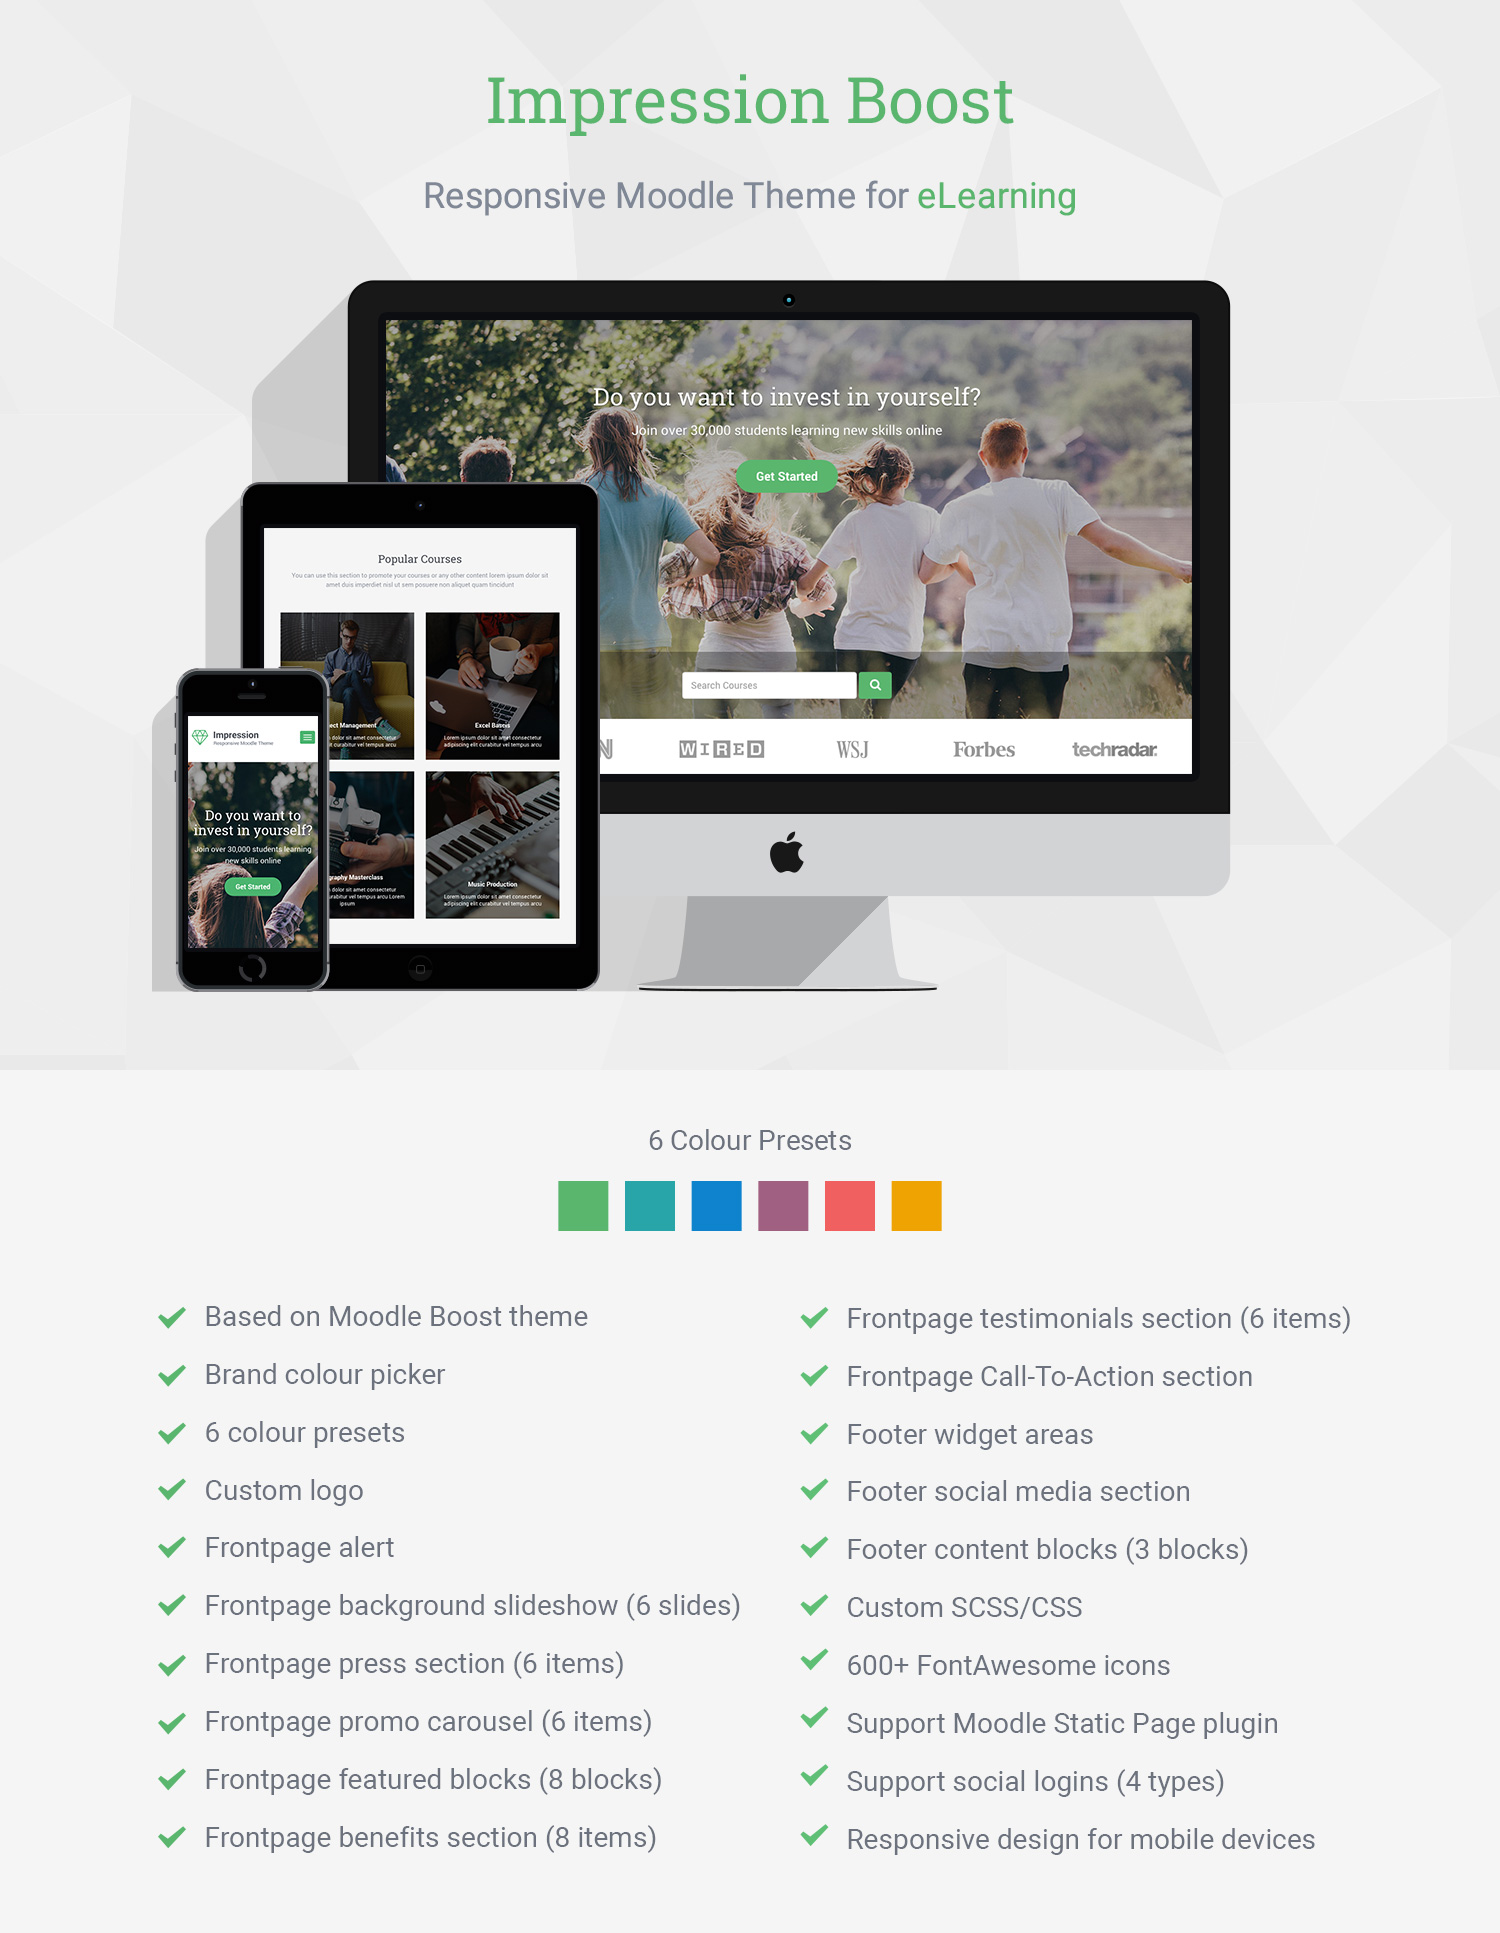 Responsive-Moodle-Theme-Impression-Boost-Promo-full